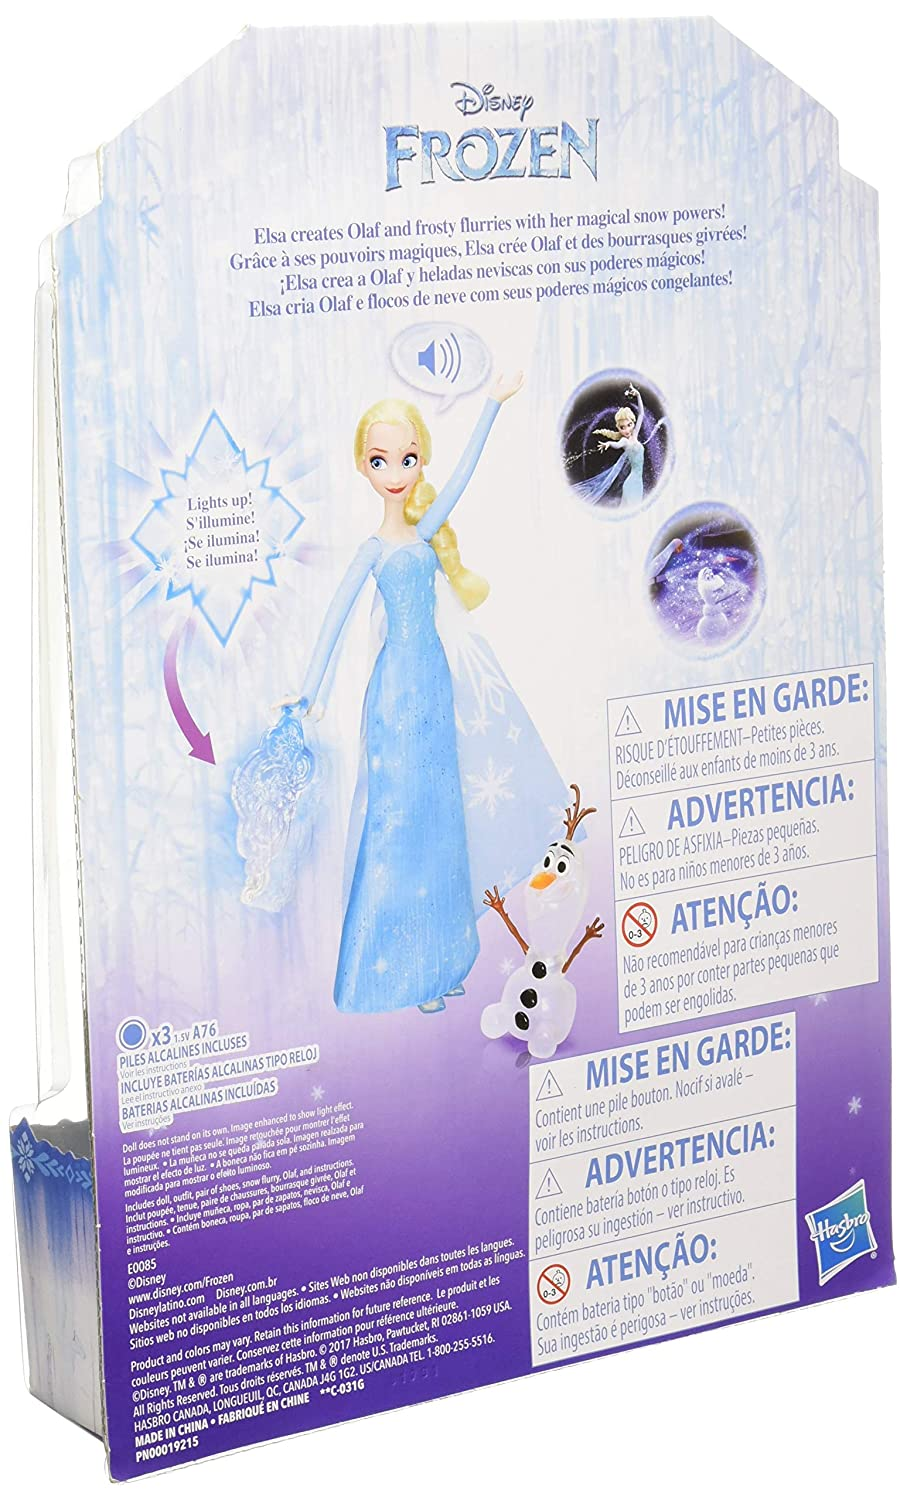 Amazon.com: Disney Frozen ICY Lights Doll Dolls & Accessories: Toys & Games